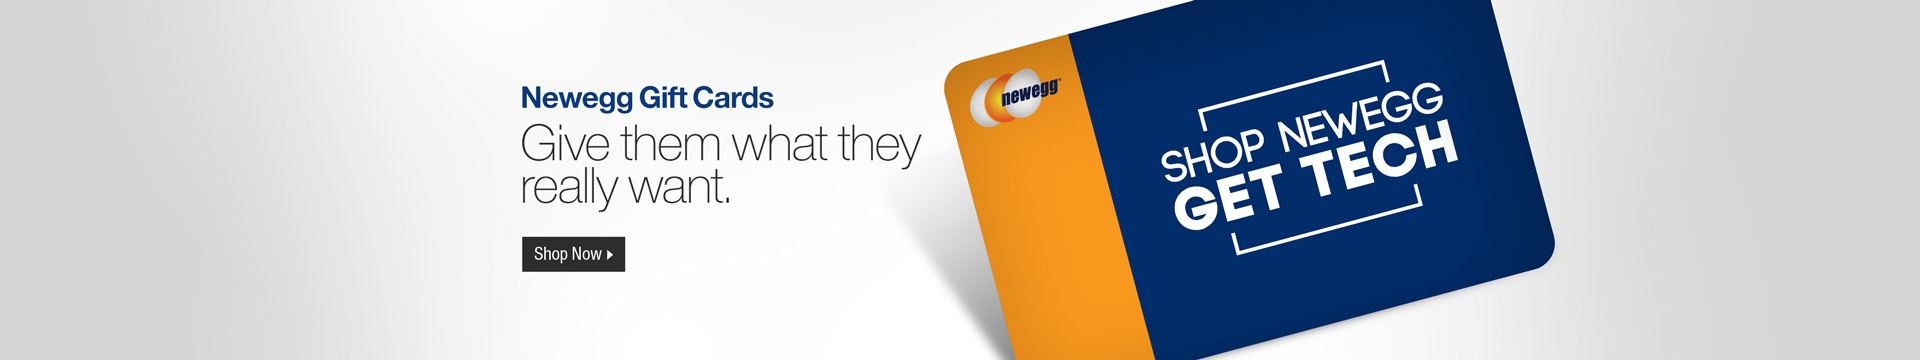 Gift Cards for Travel, Movies, Gaming & More - Newegg.com